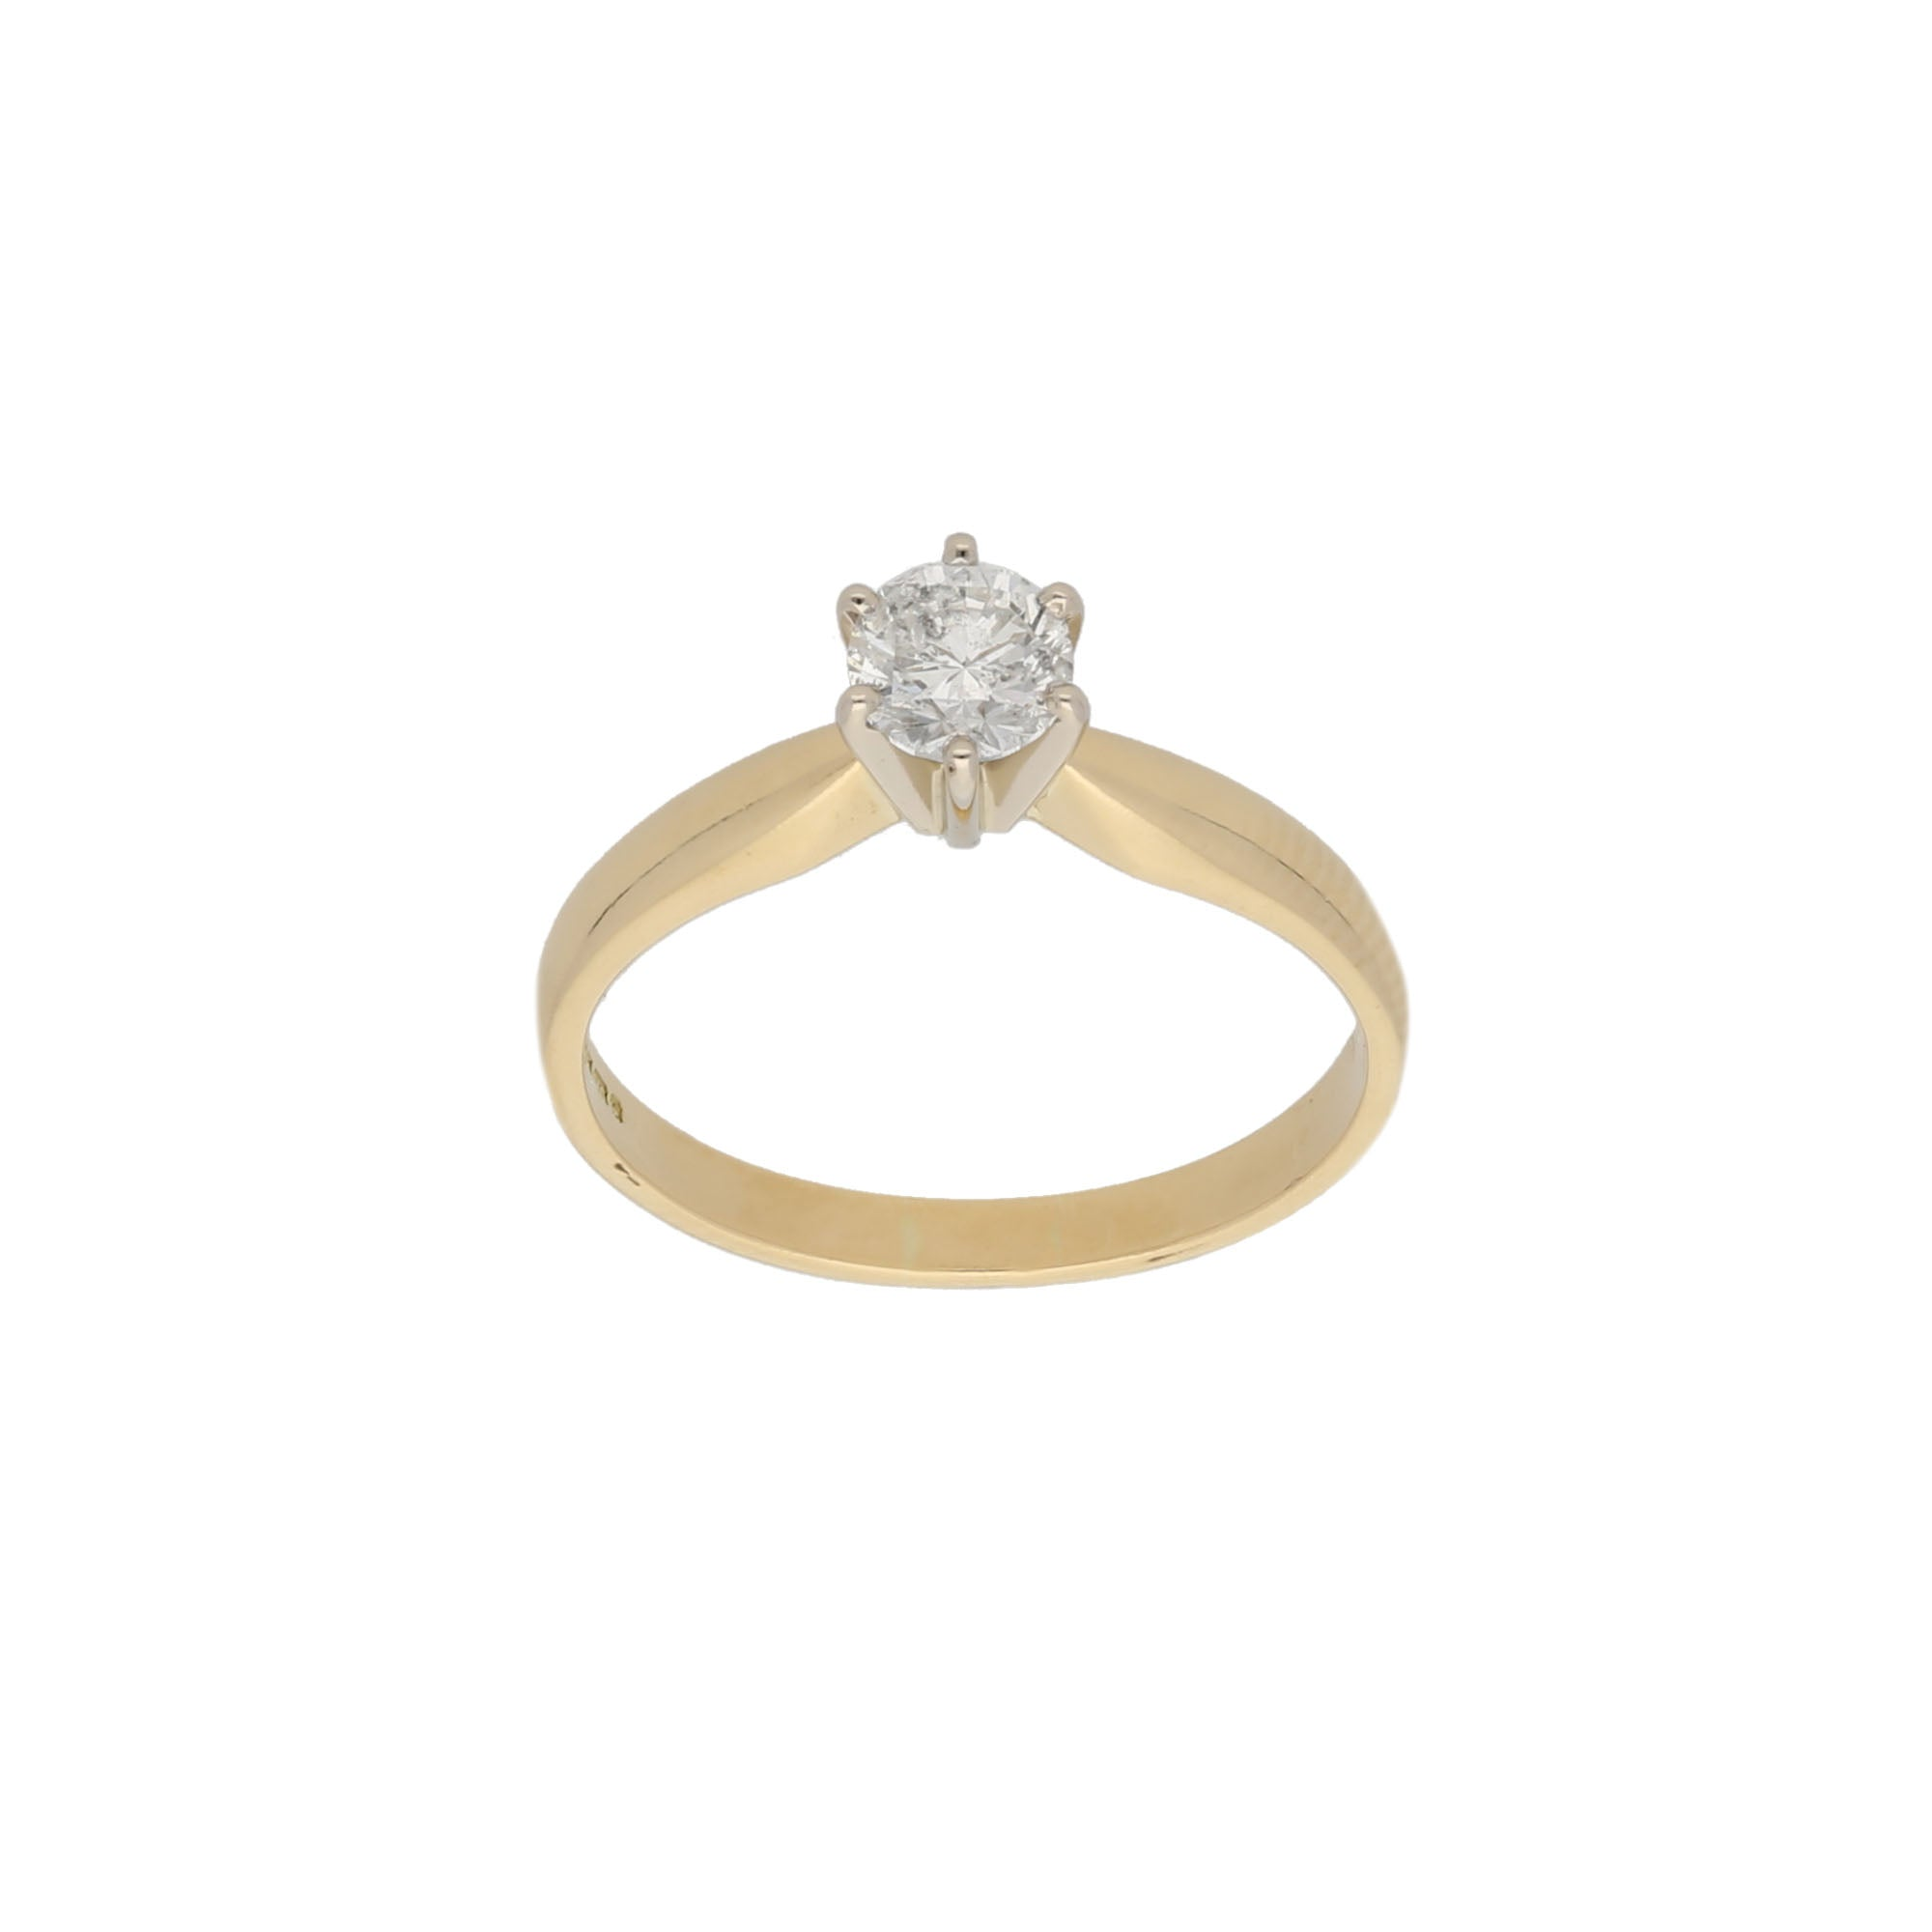 18ct Gold Diamond Ladies Solitaire Ring Size N